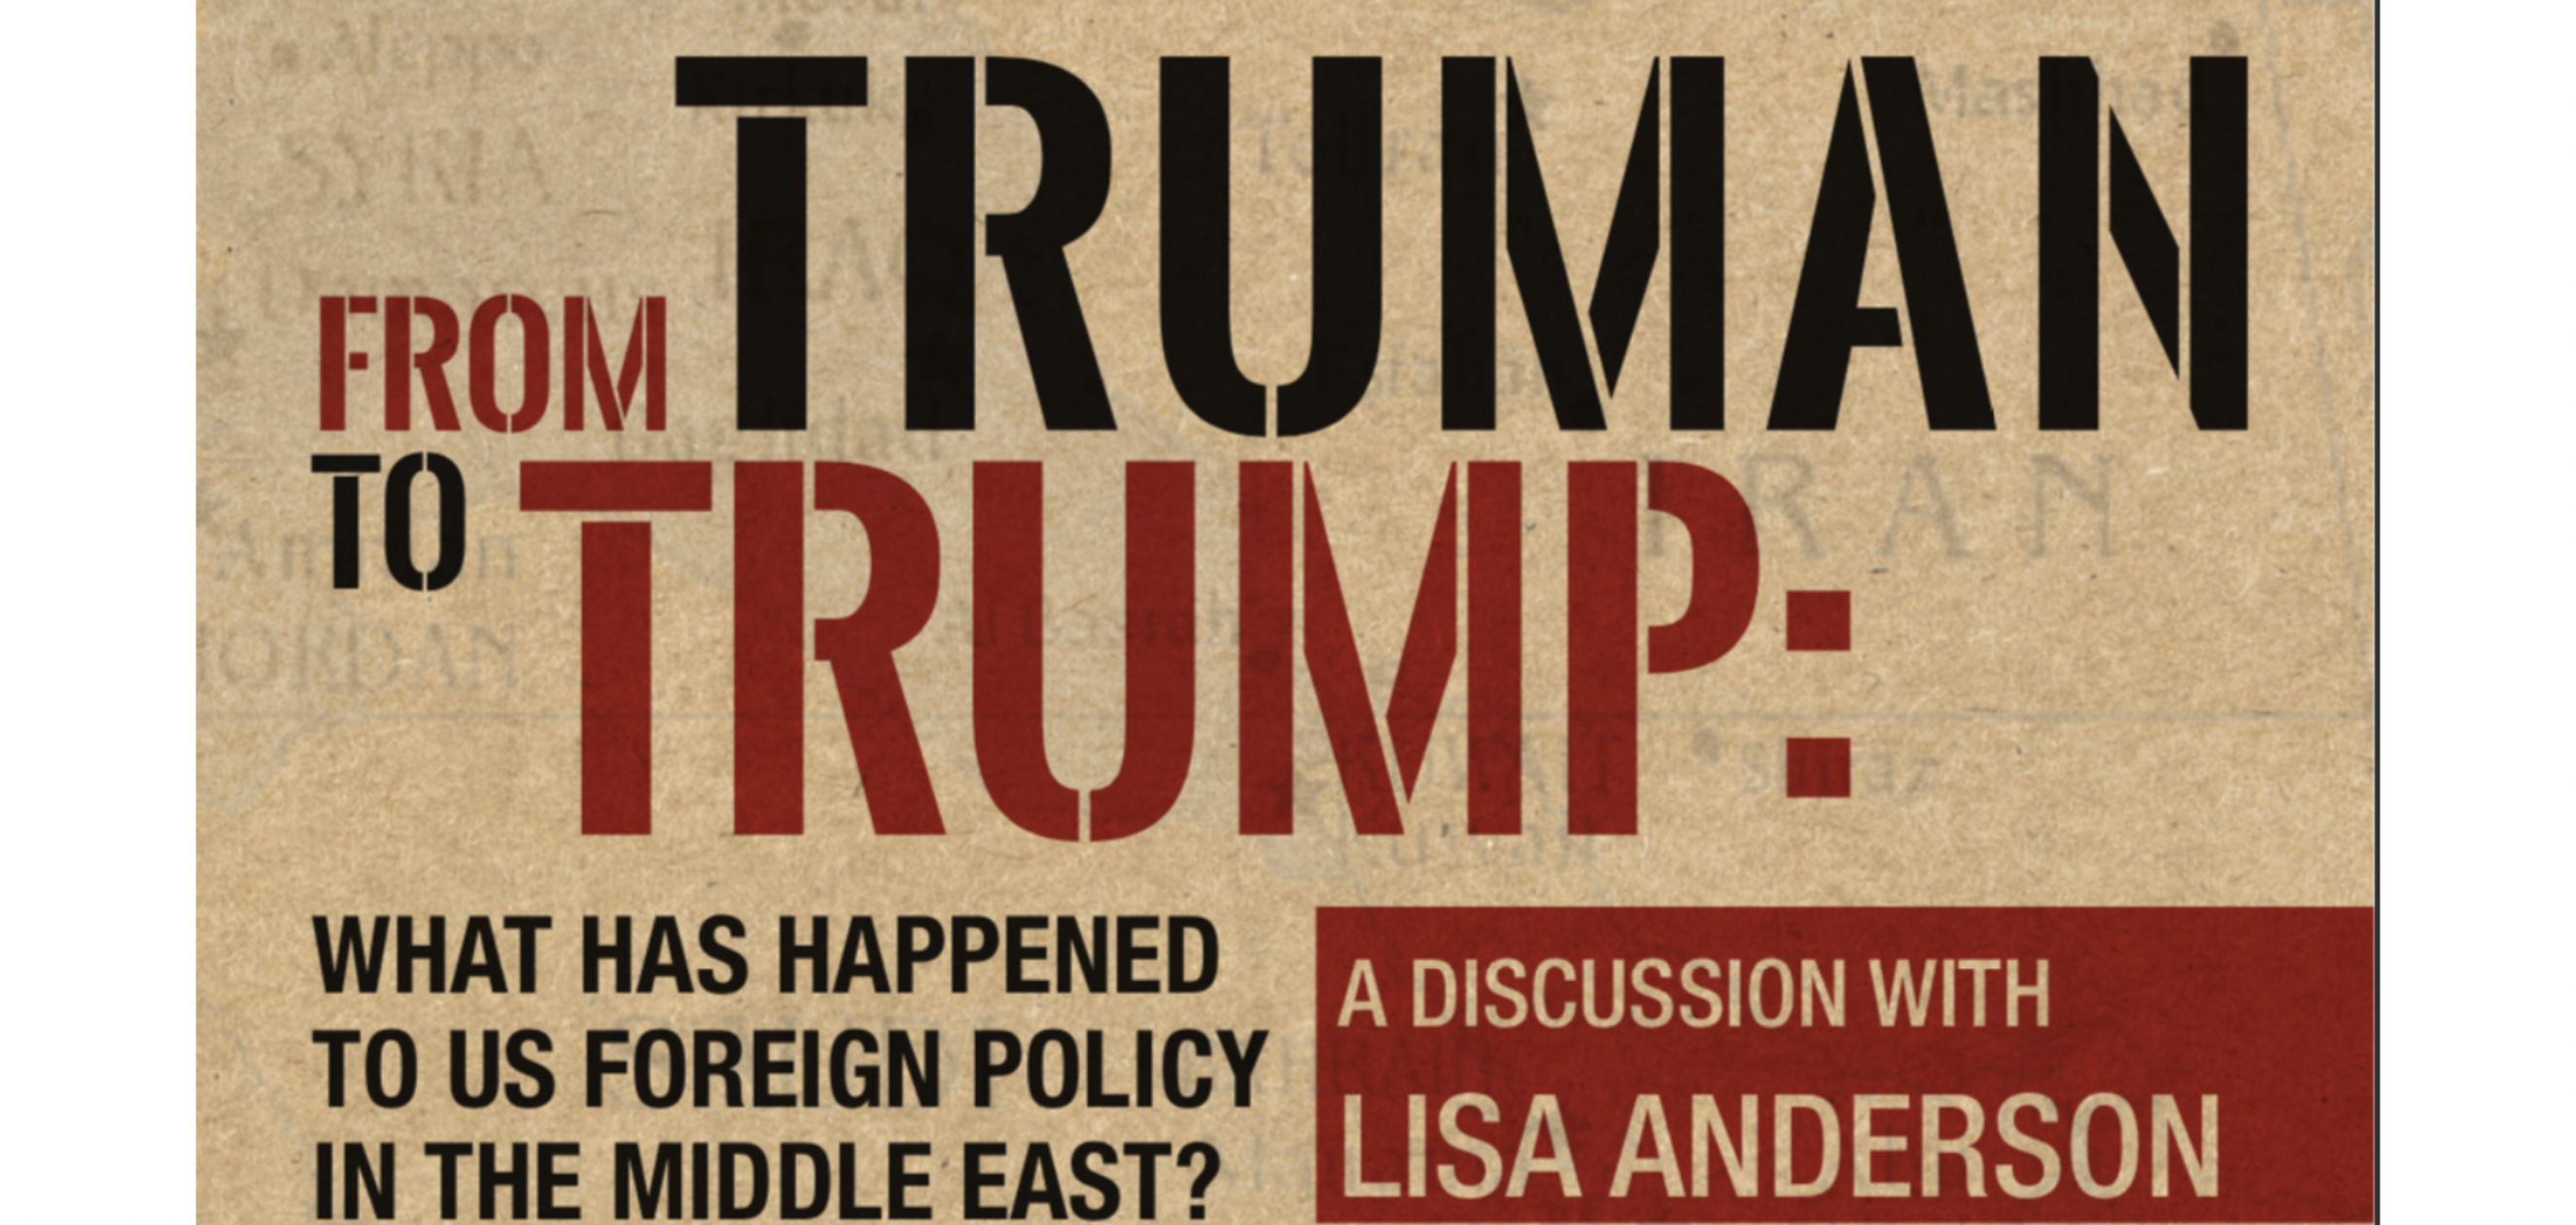 Event - From Truman to Trump: What Has Happened to US Policy in the Middle East?